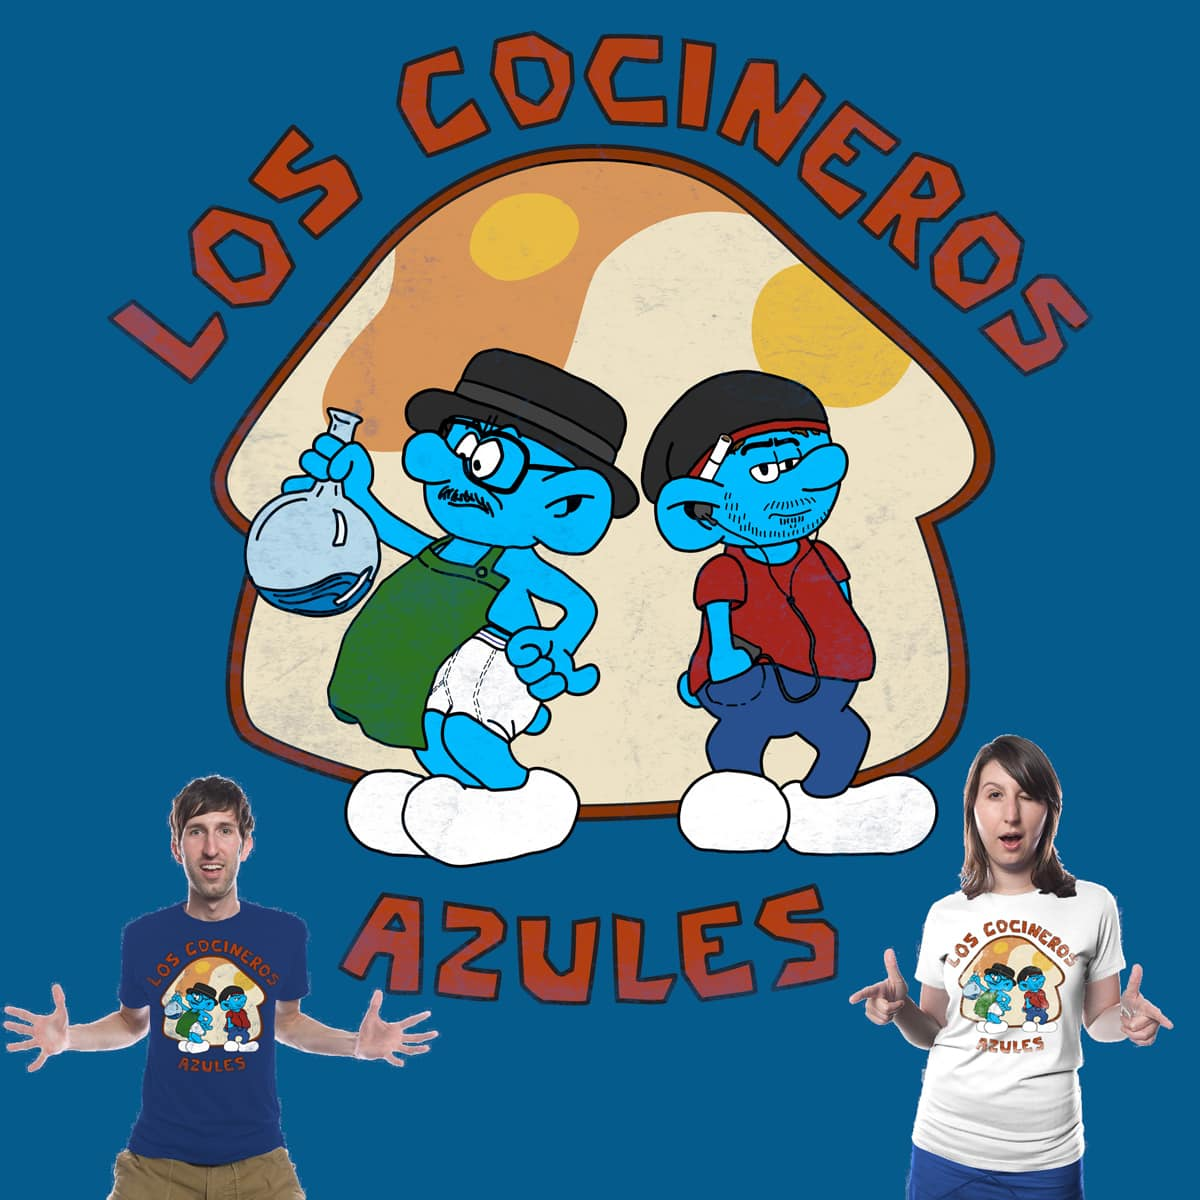 The Blue Cooks by Mollybu on Threadless